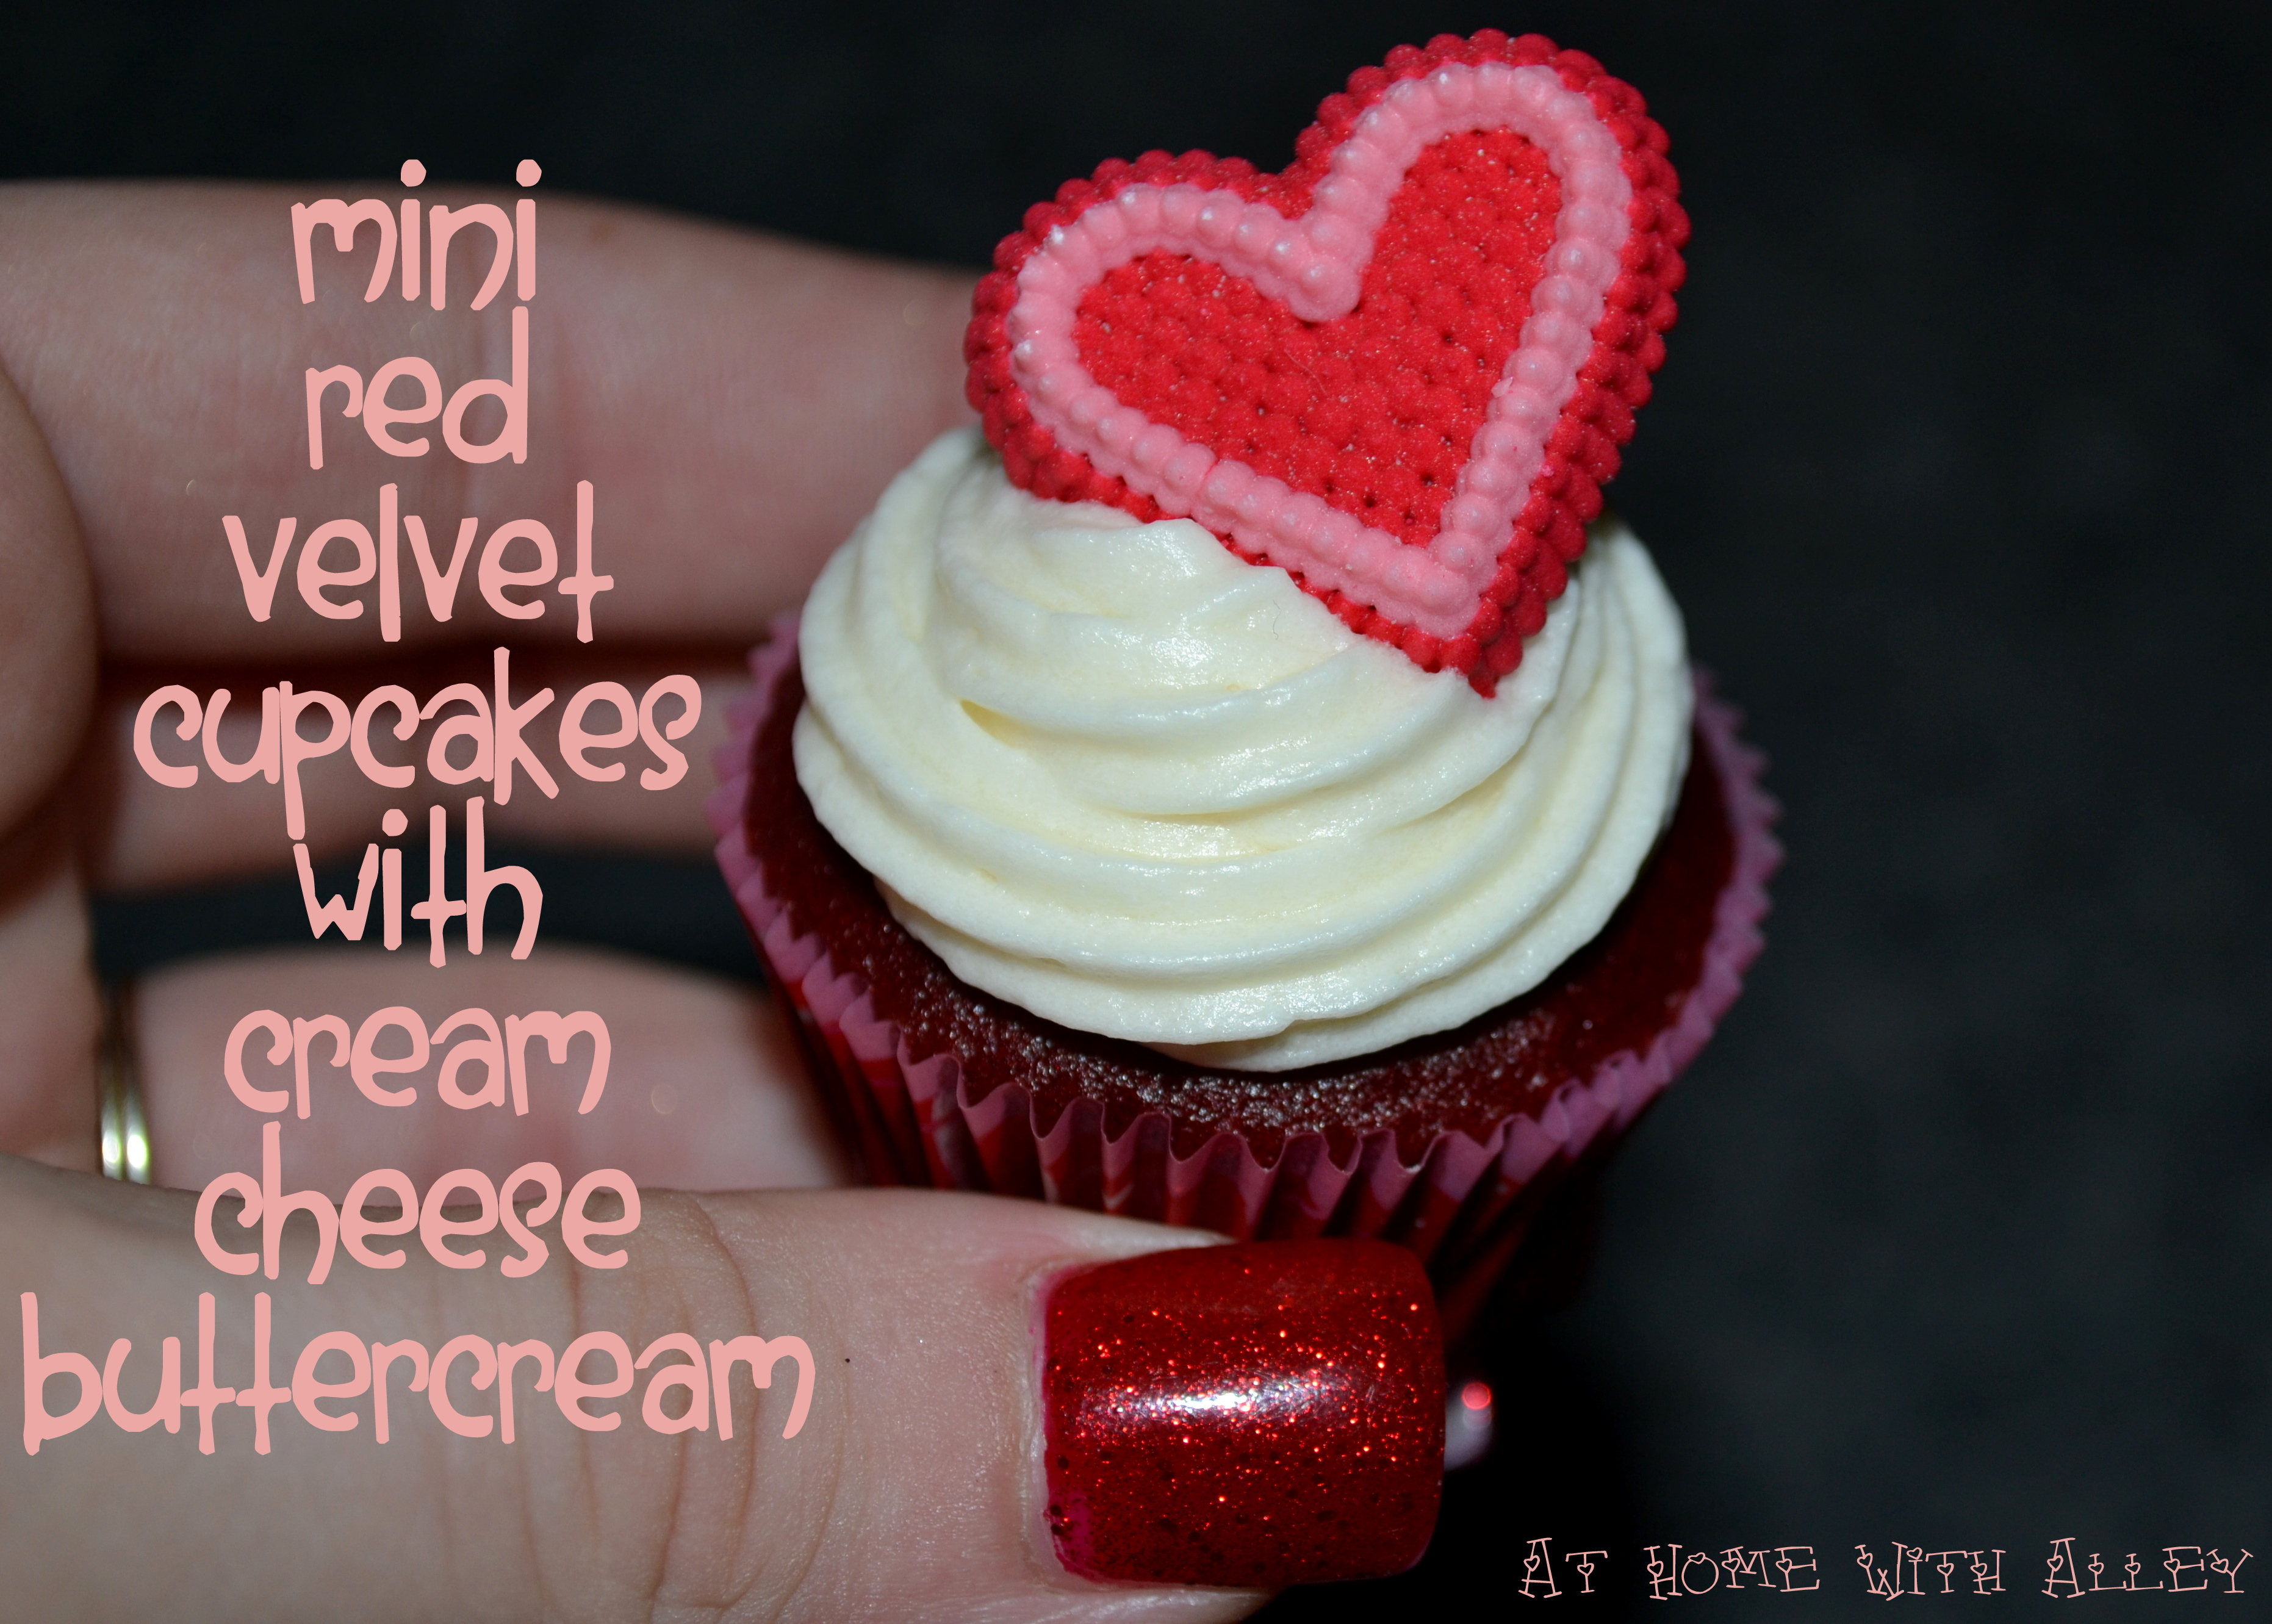 Mini Red Velvet Cupcakes with Cream Cheese Buttercream Frosting |